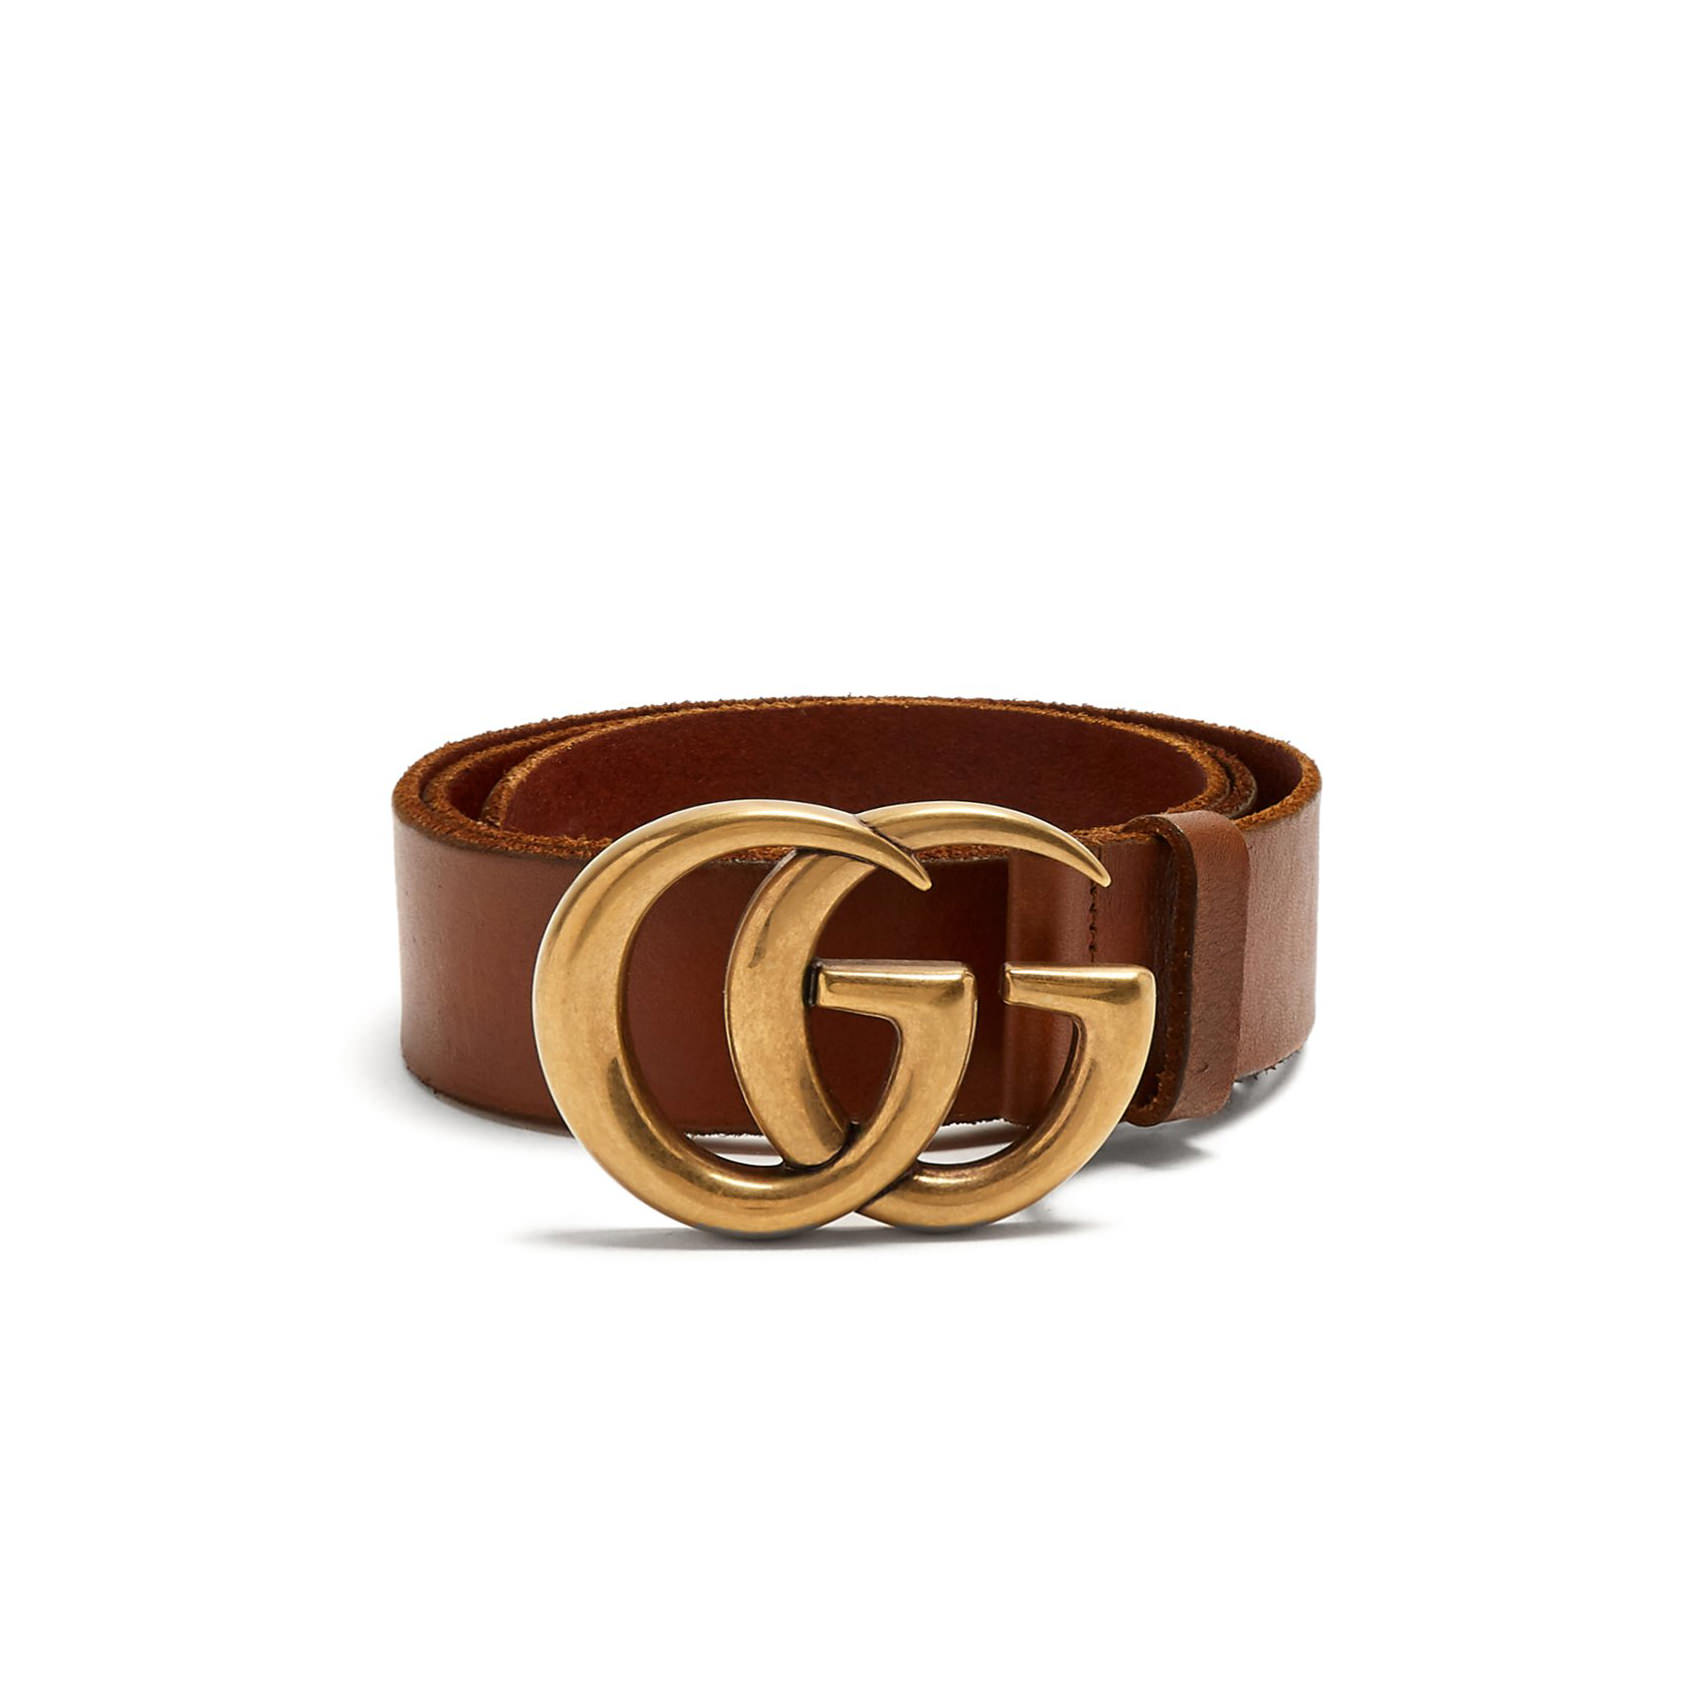 GG-logo 4cm leather belt